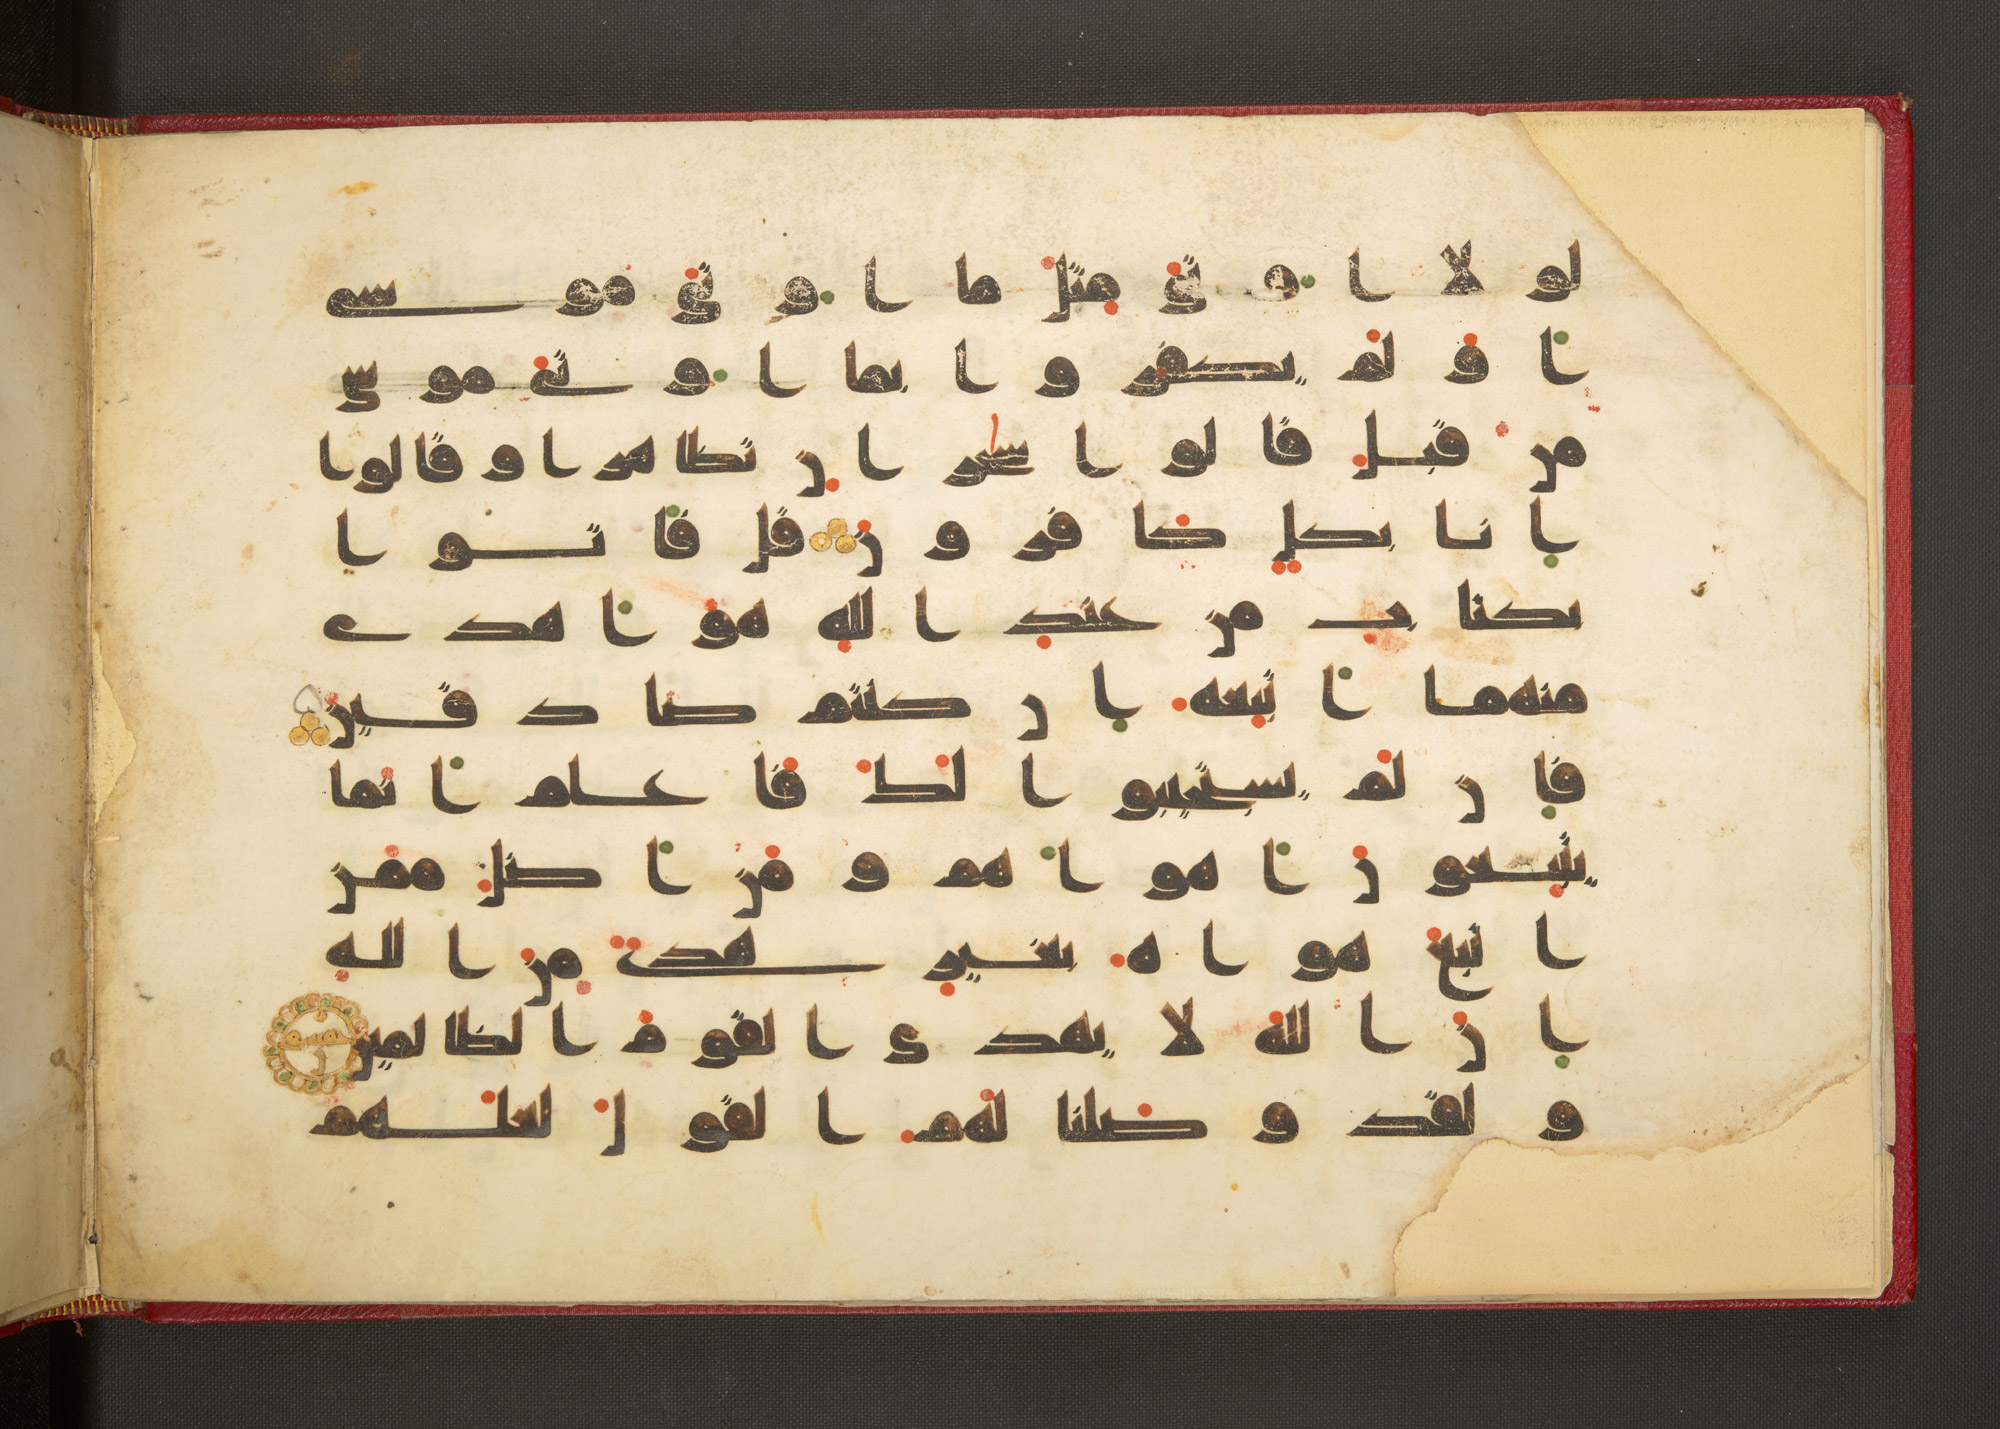 An early Kufic Qur'an